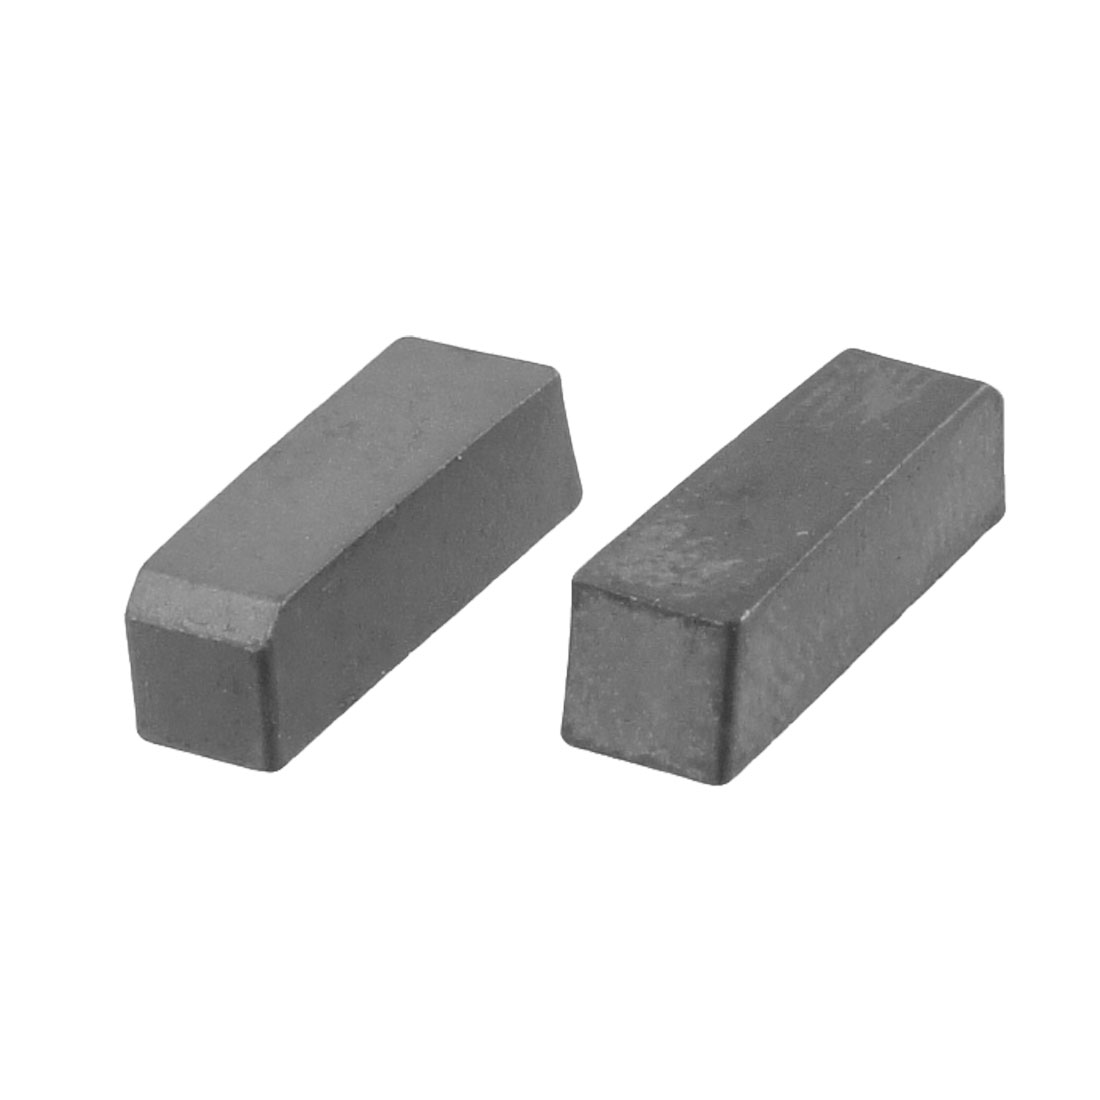 2 Pcs Hard Alloy Square Cemented Carbide Inserts Cutter Tip Cutting Tool